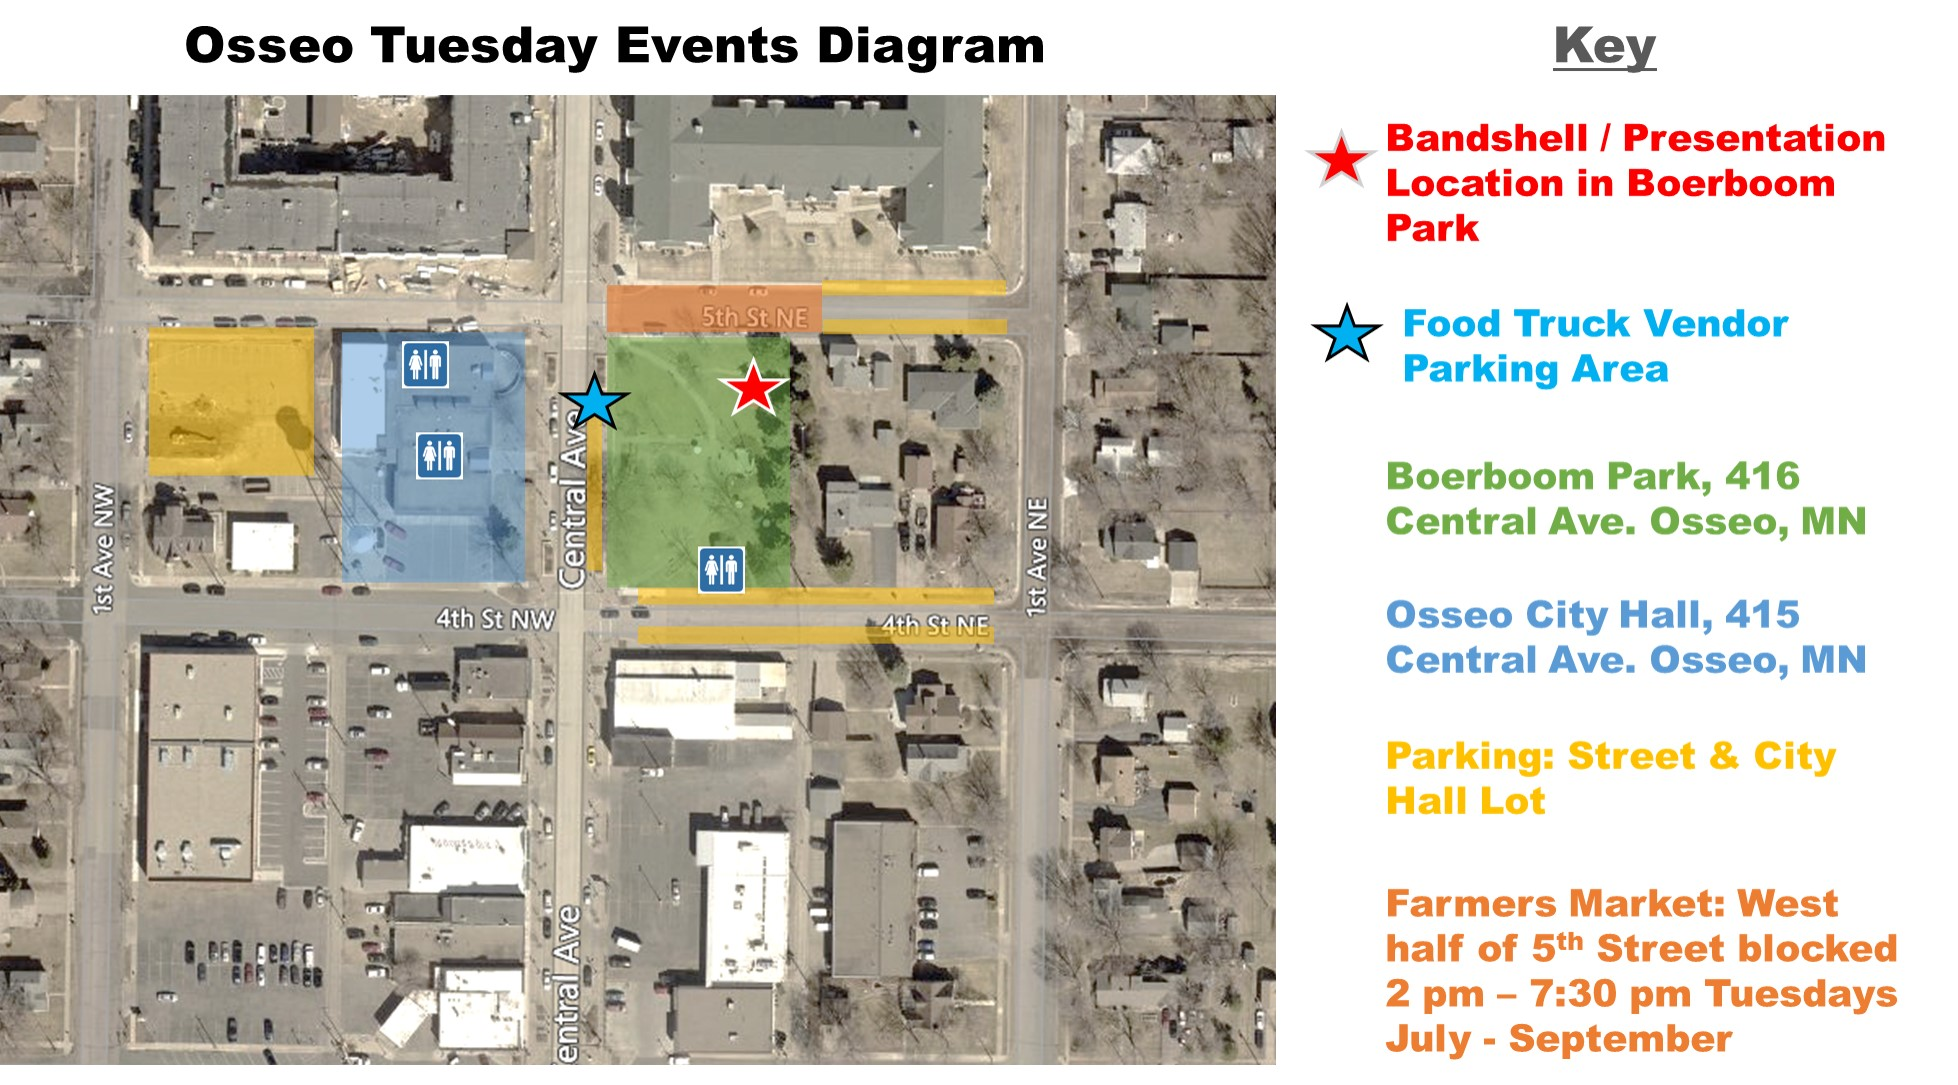 Events Diagram